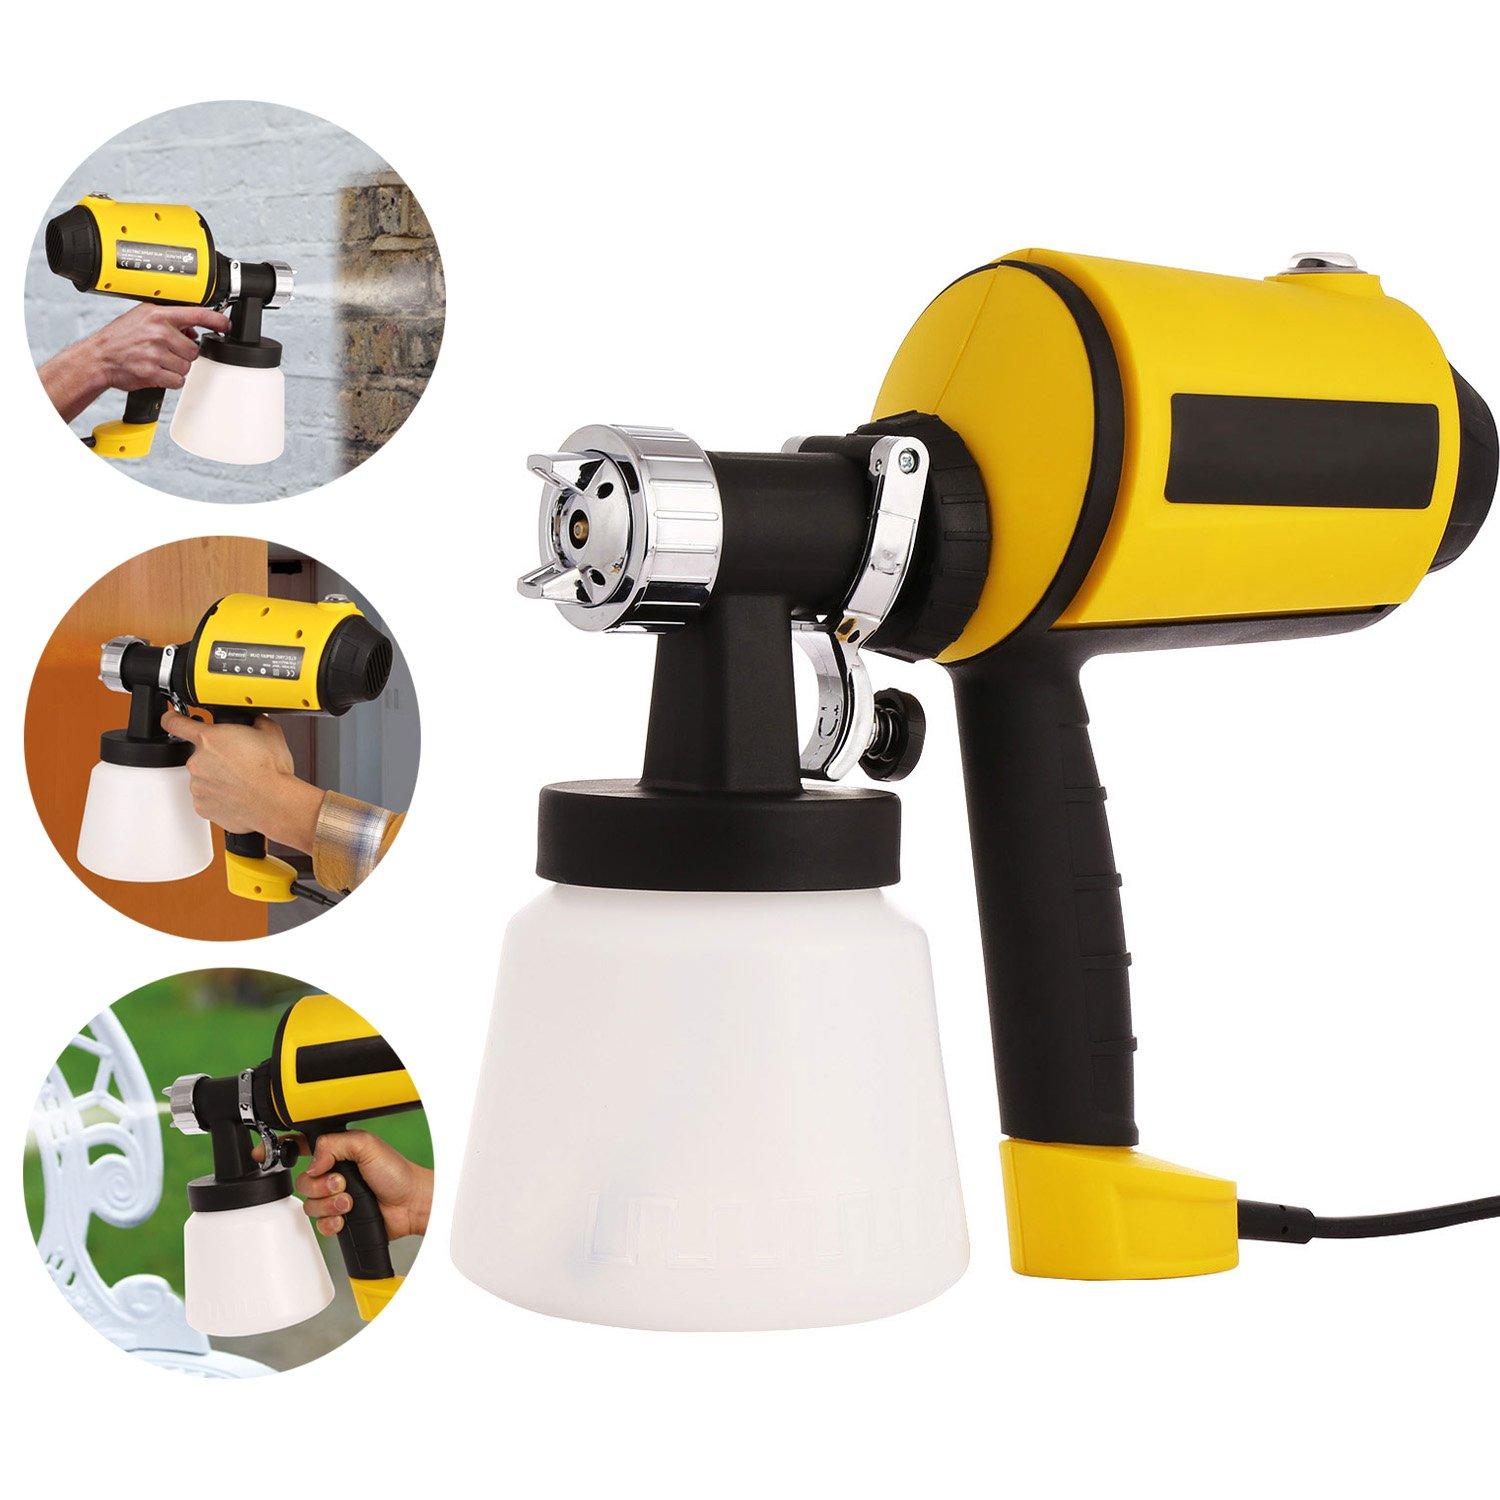 Anfan Advanced Electric Spray Gun 1100ml/min HVLP Paint Sprayer with Three Spray Patterns + Three Nozzle Sizes + Adjustable Valve Knob + 900ml Detachable Container + 6.5ft Power Line (Yellow)